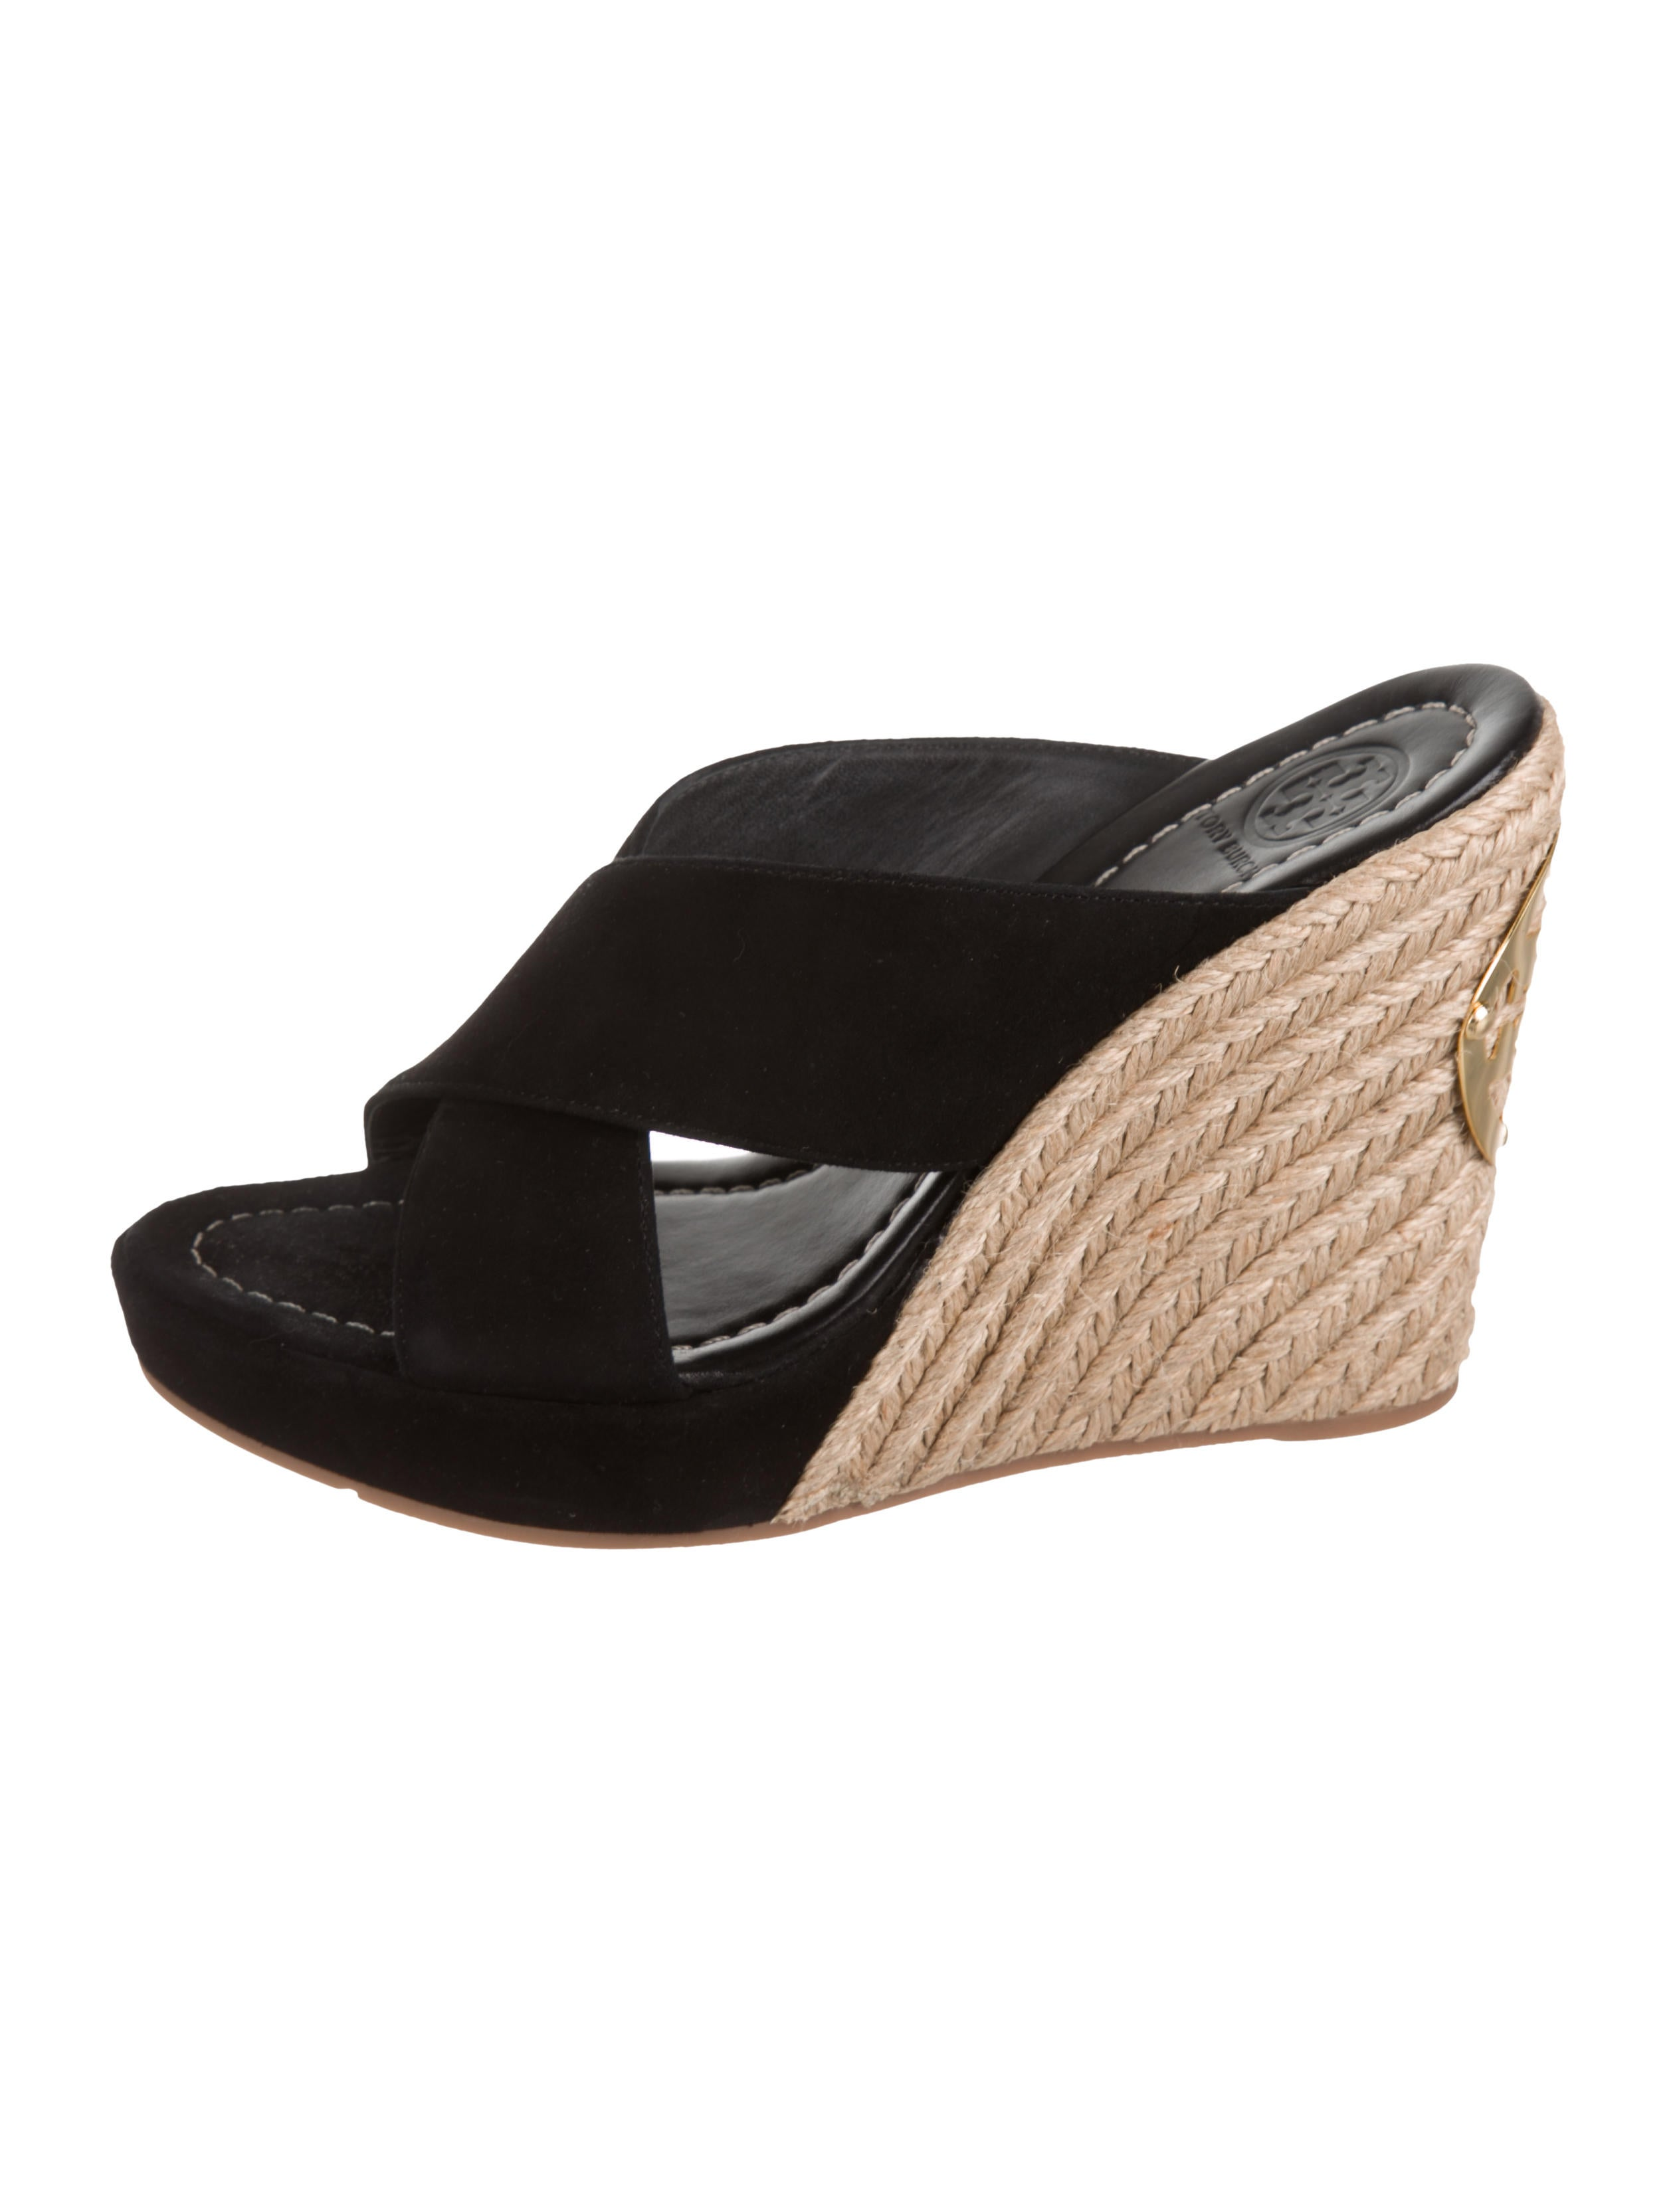 611c242282c Tory Burch Bailey Espadrille Wedge Sandals - Shoes - WTO158561